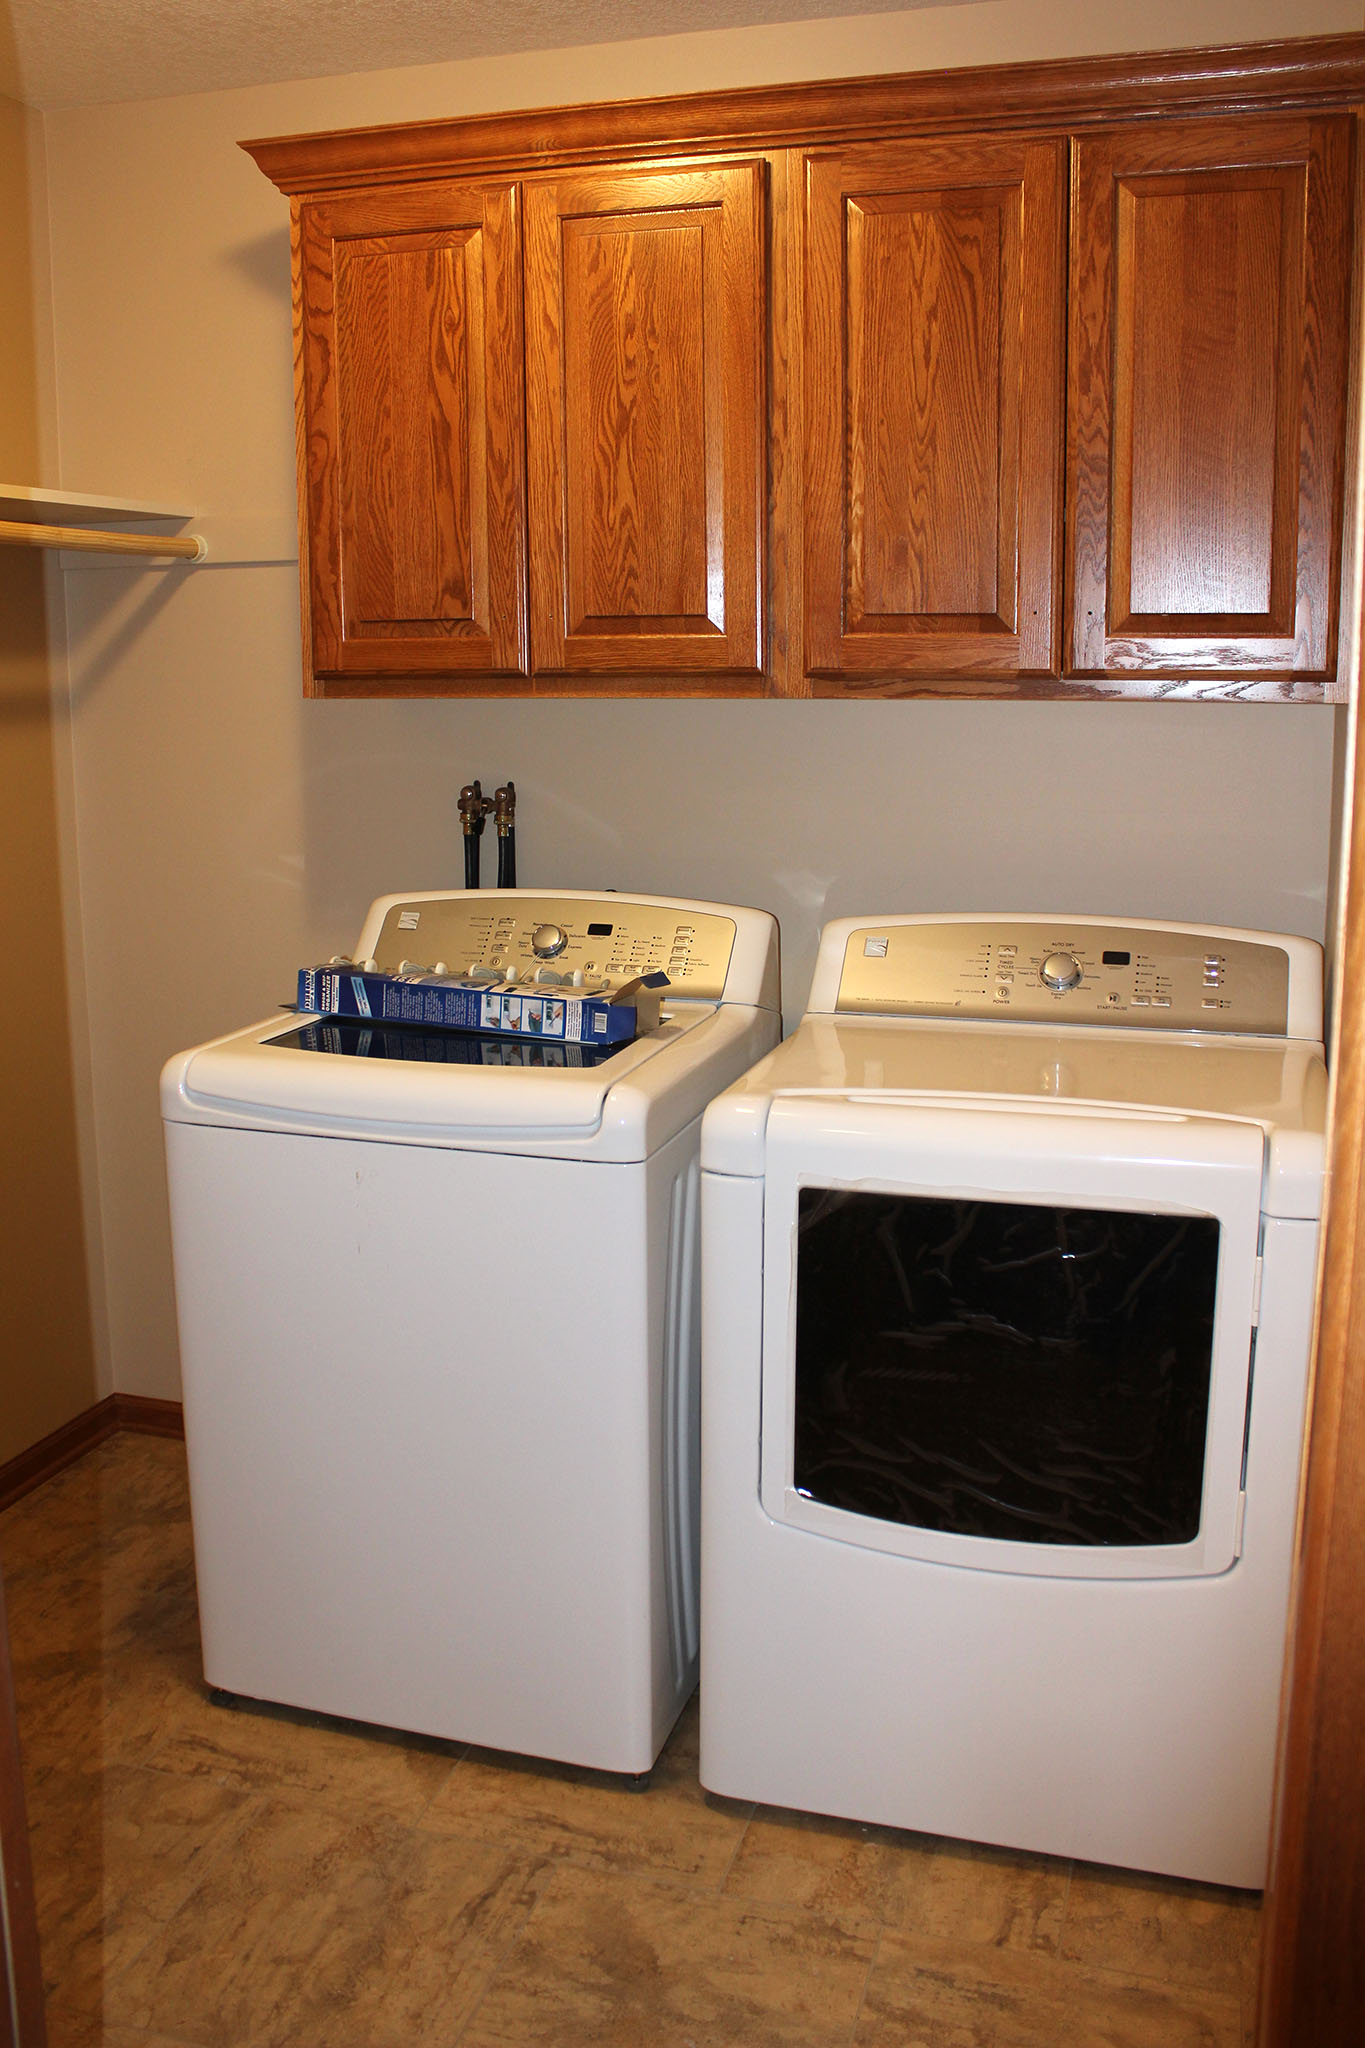 Twin home laundry room with cabinets